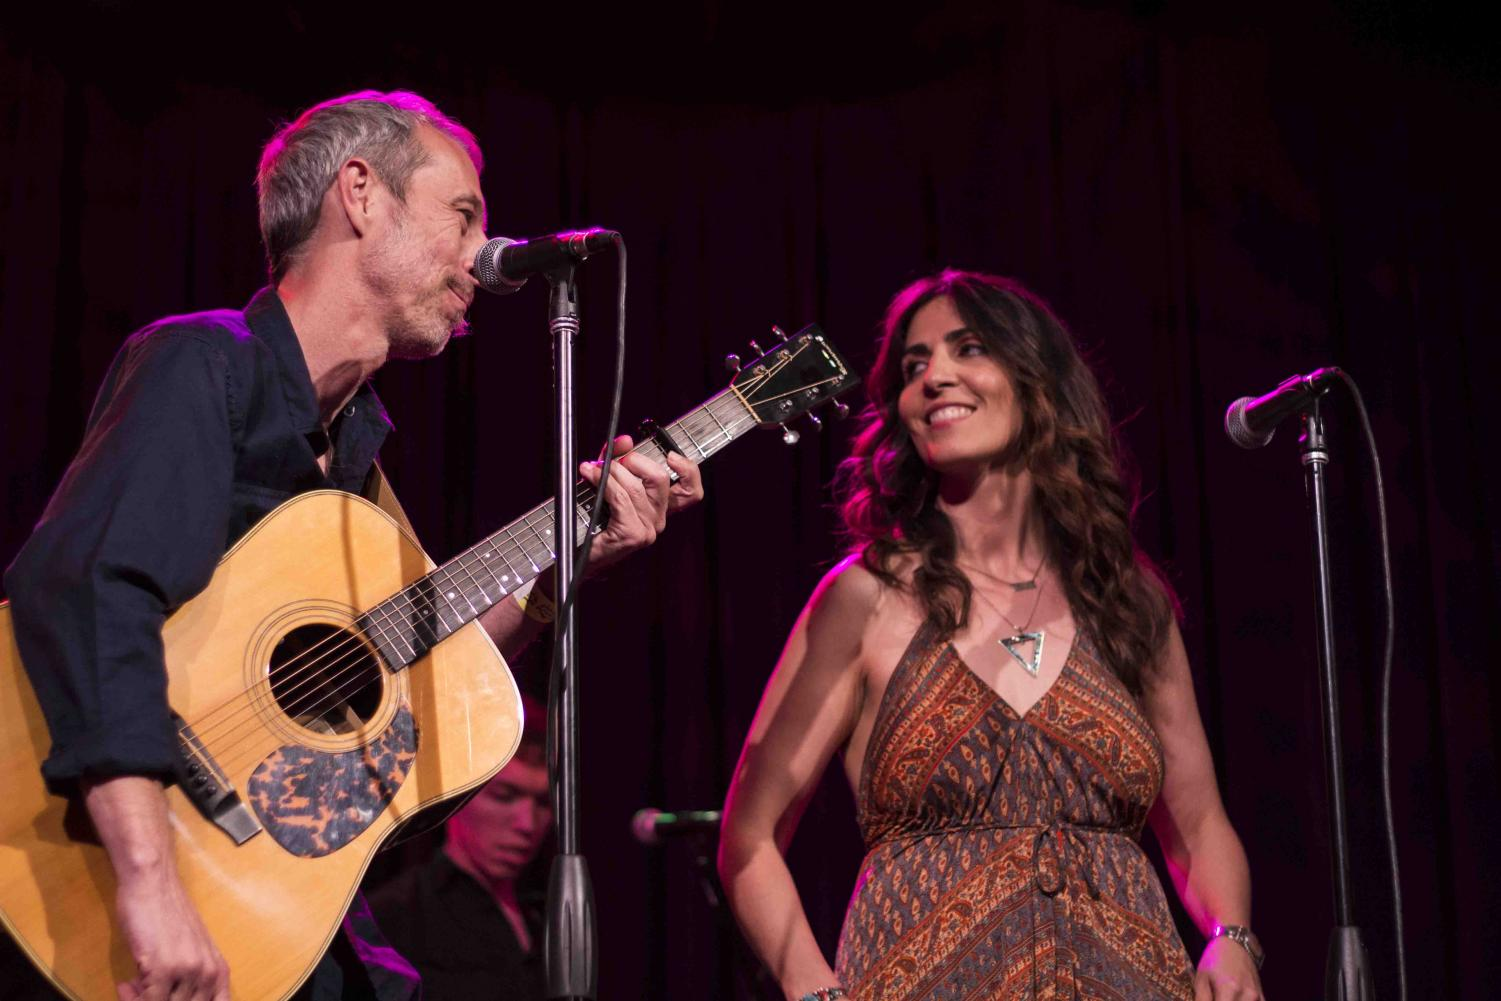 David+Elke+%28left%29+and+Lisa+Valentine+of+Sunday+Iris+perform+at+Small+Town+Big+Sound+Thursday+evening+at+Sierra+Nevada+Brewing+Co.%27s+Big+Room.+Photo+credit%3A+Brian+Luong